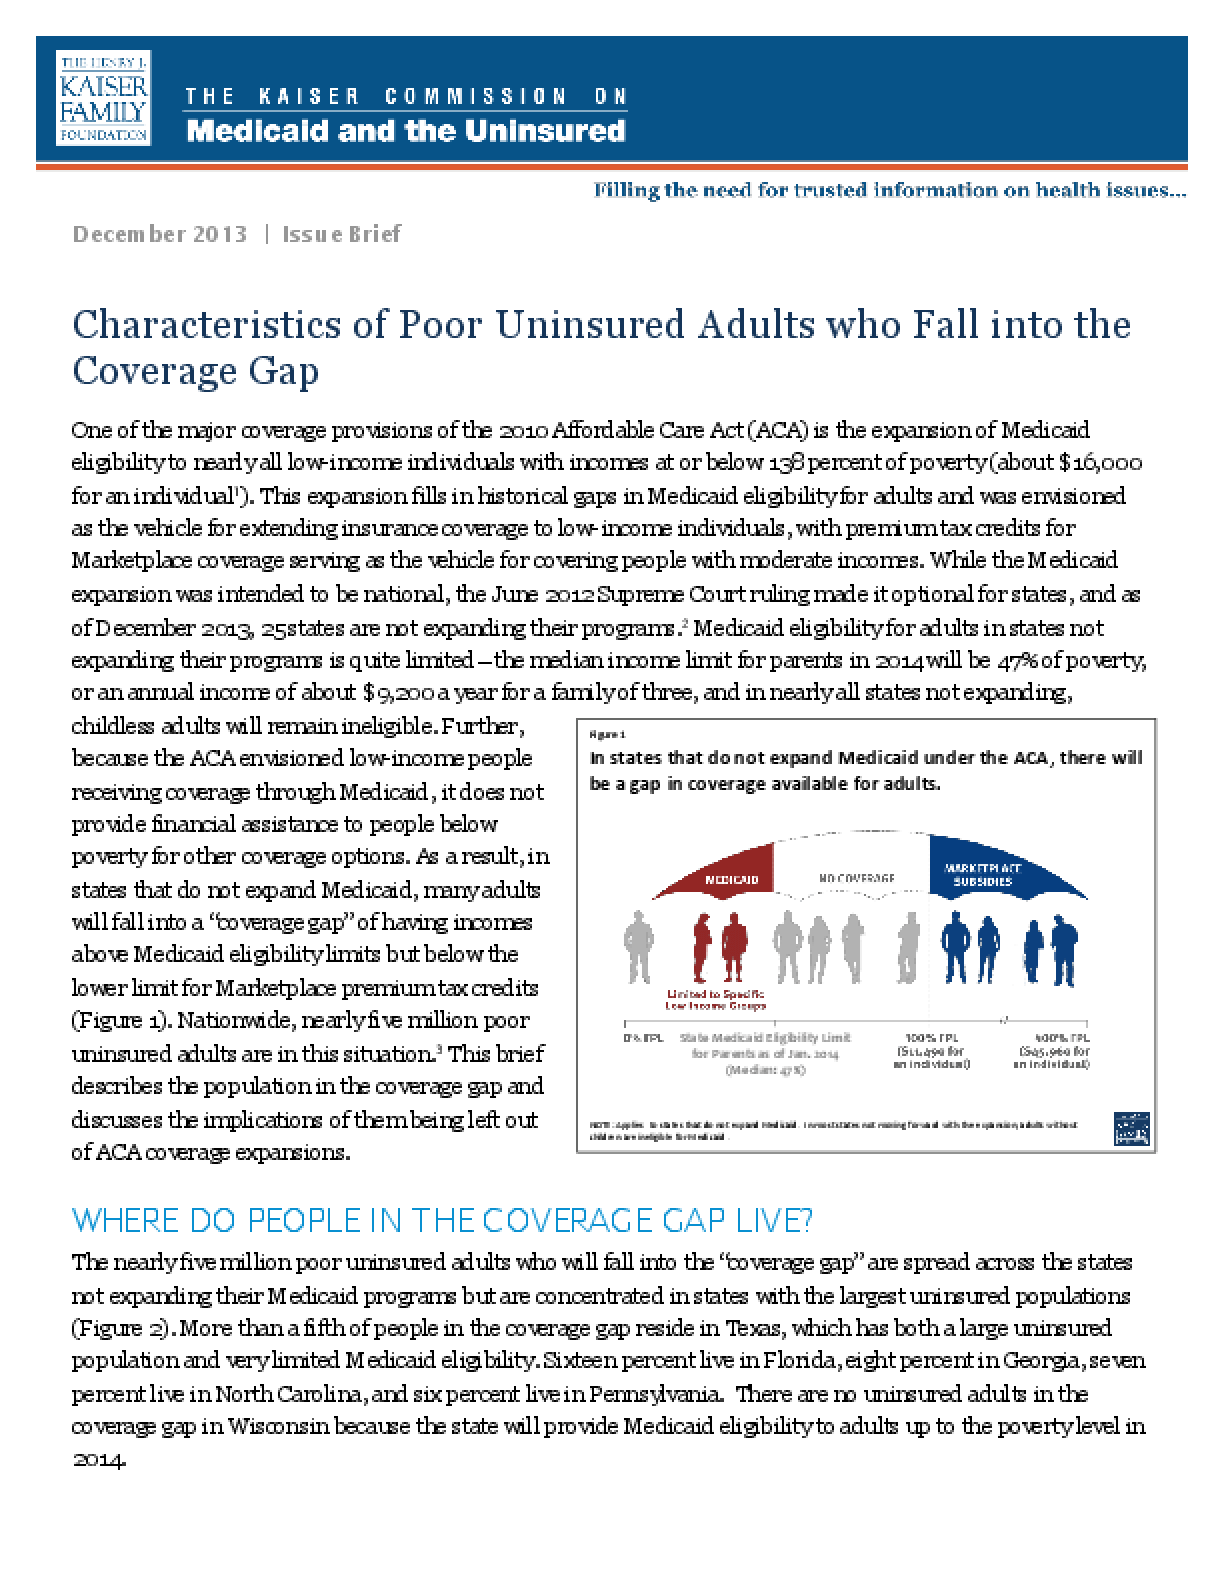 Characteristics of Poor Uninsured Adults who Fall into the Coverage Gap